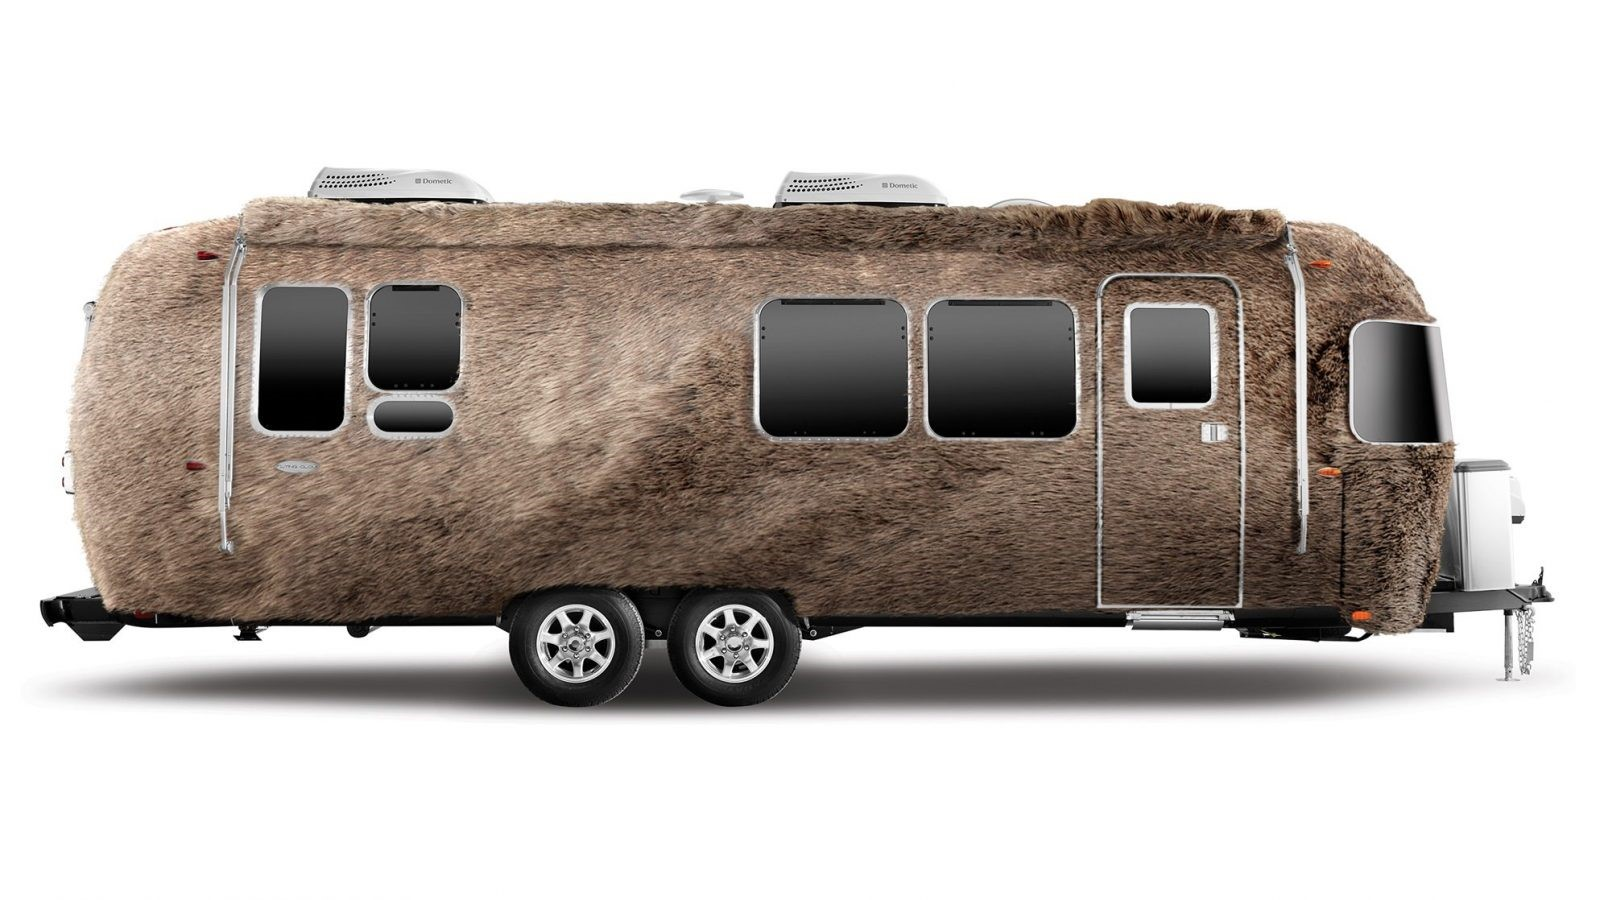 This trailer is un-bear-ably cool. We'll see ourselves out. | Airstream photo